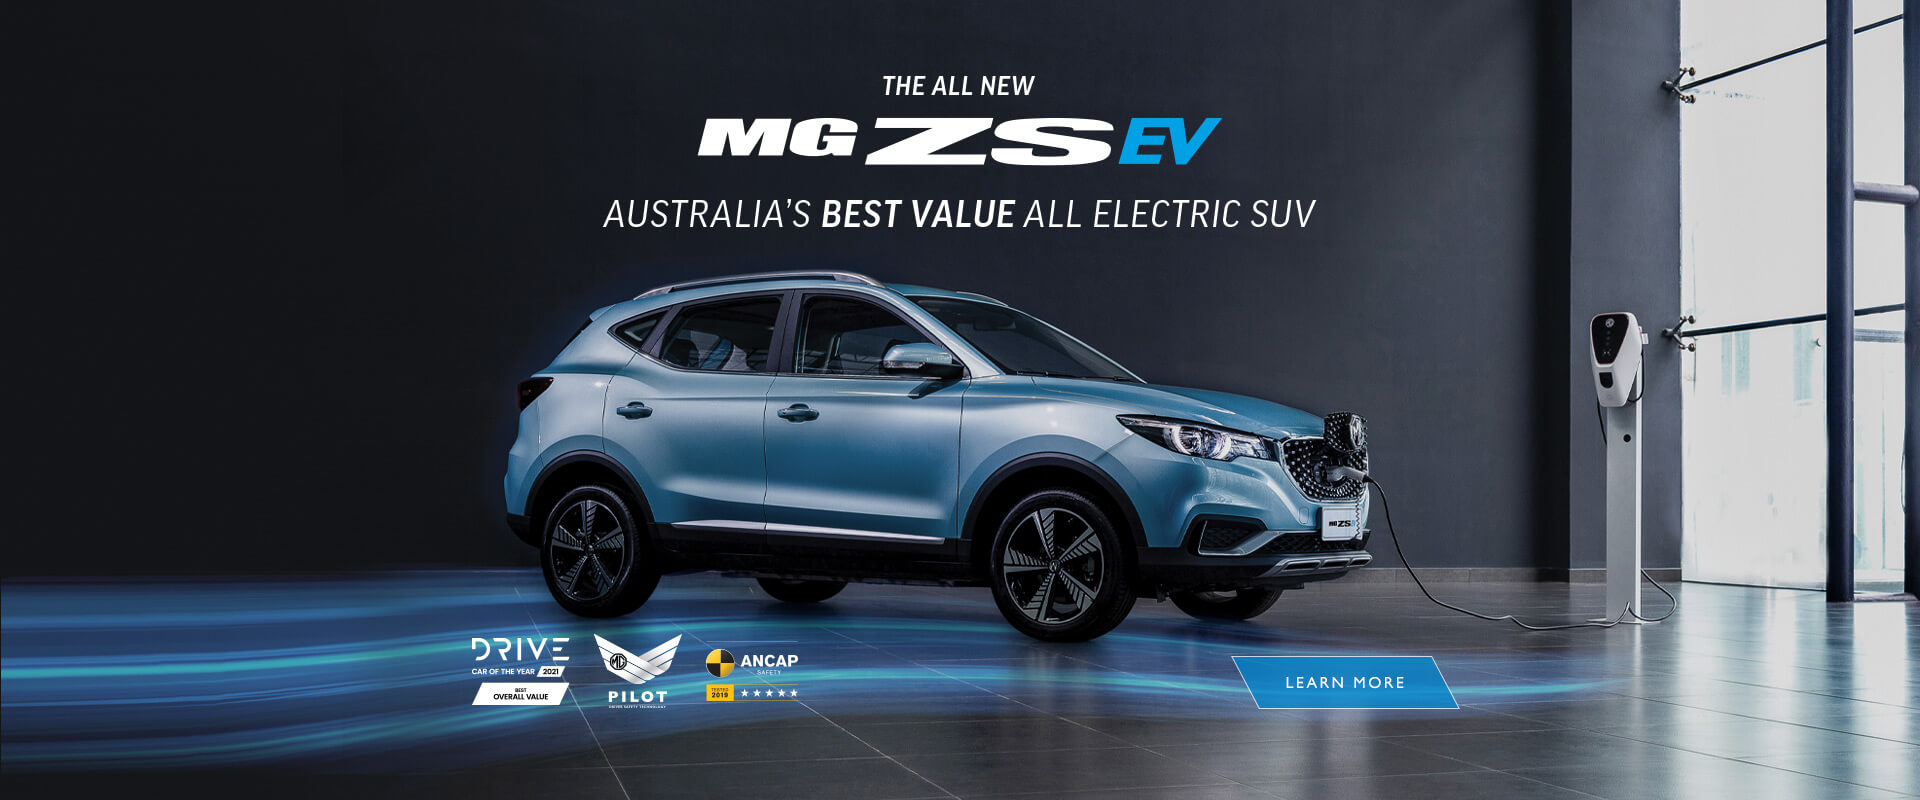 The new MG ZS EV. Electric for Everyone